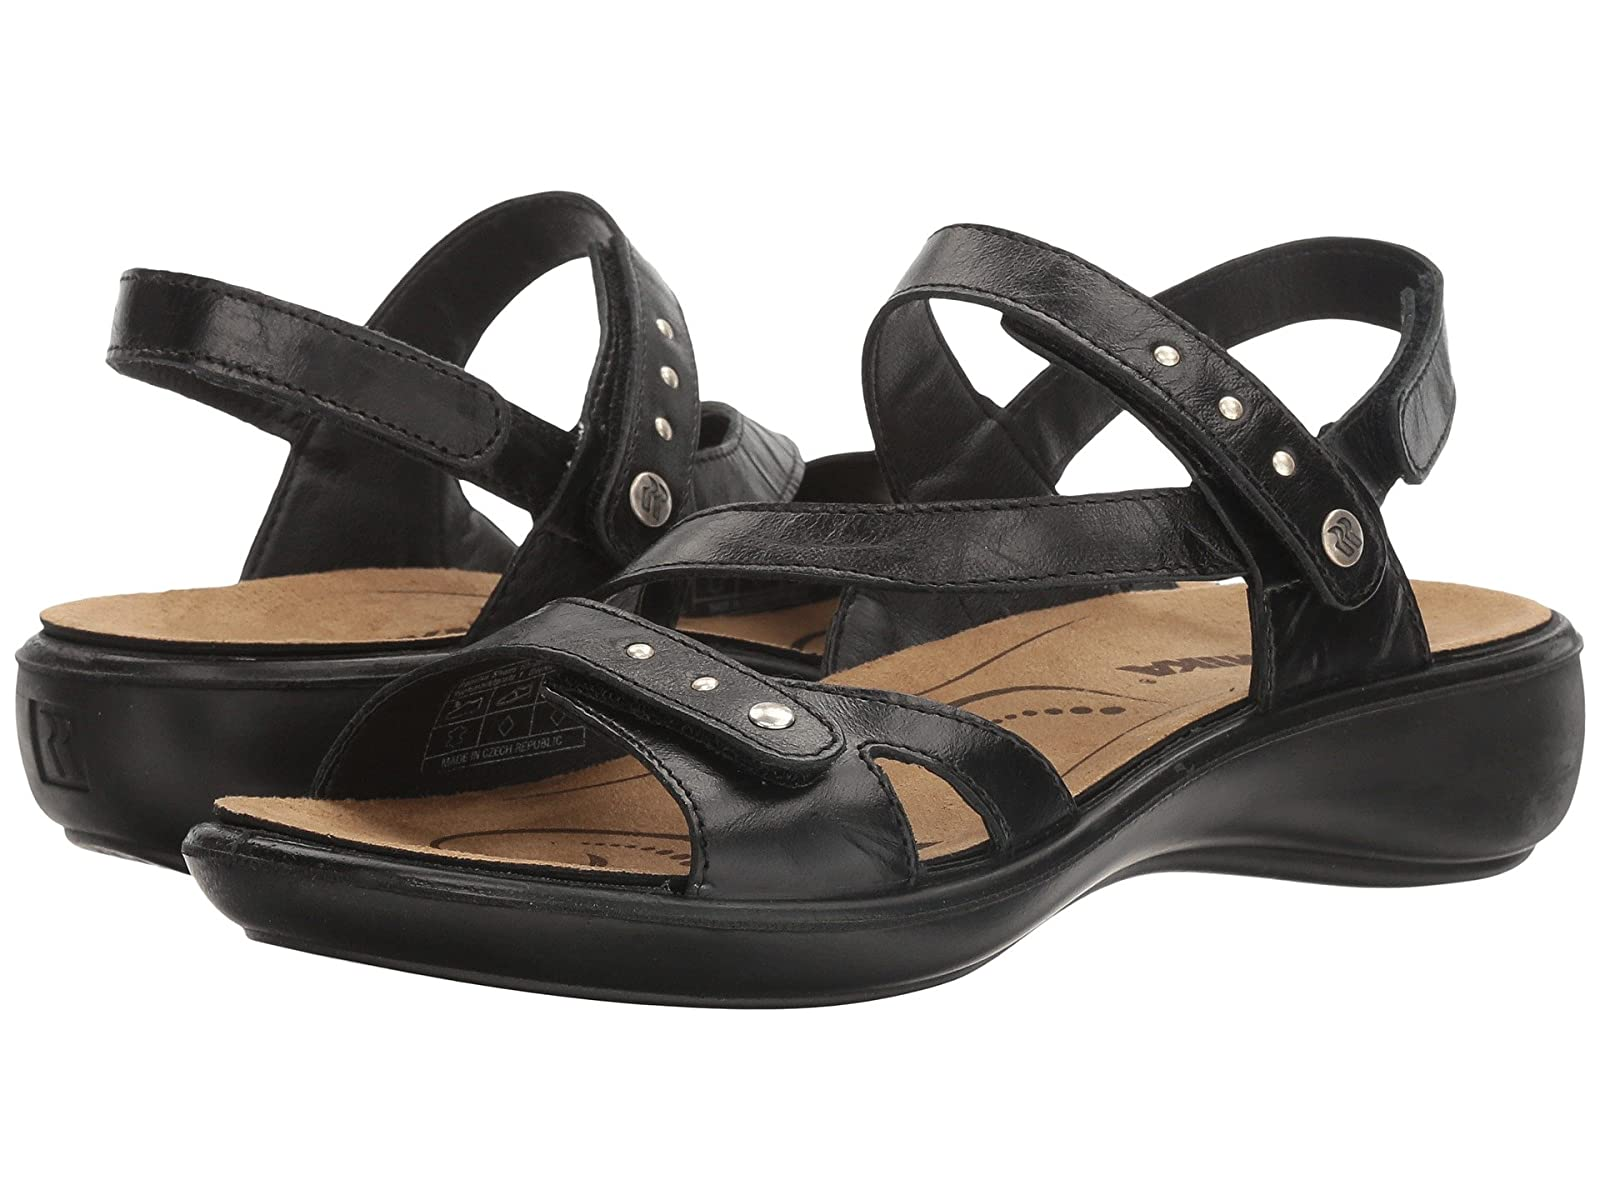 Romika Ibiza 70Atmospheric grades have affordable shoes